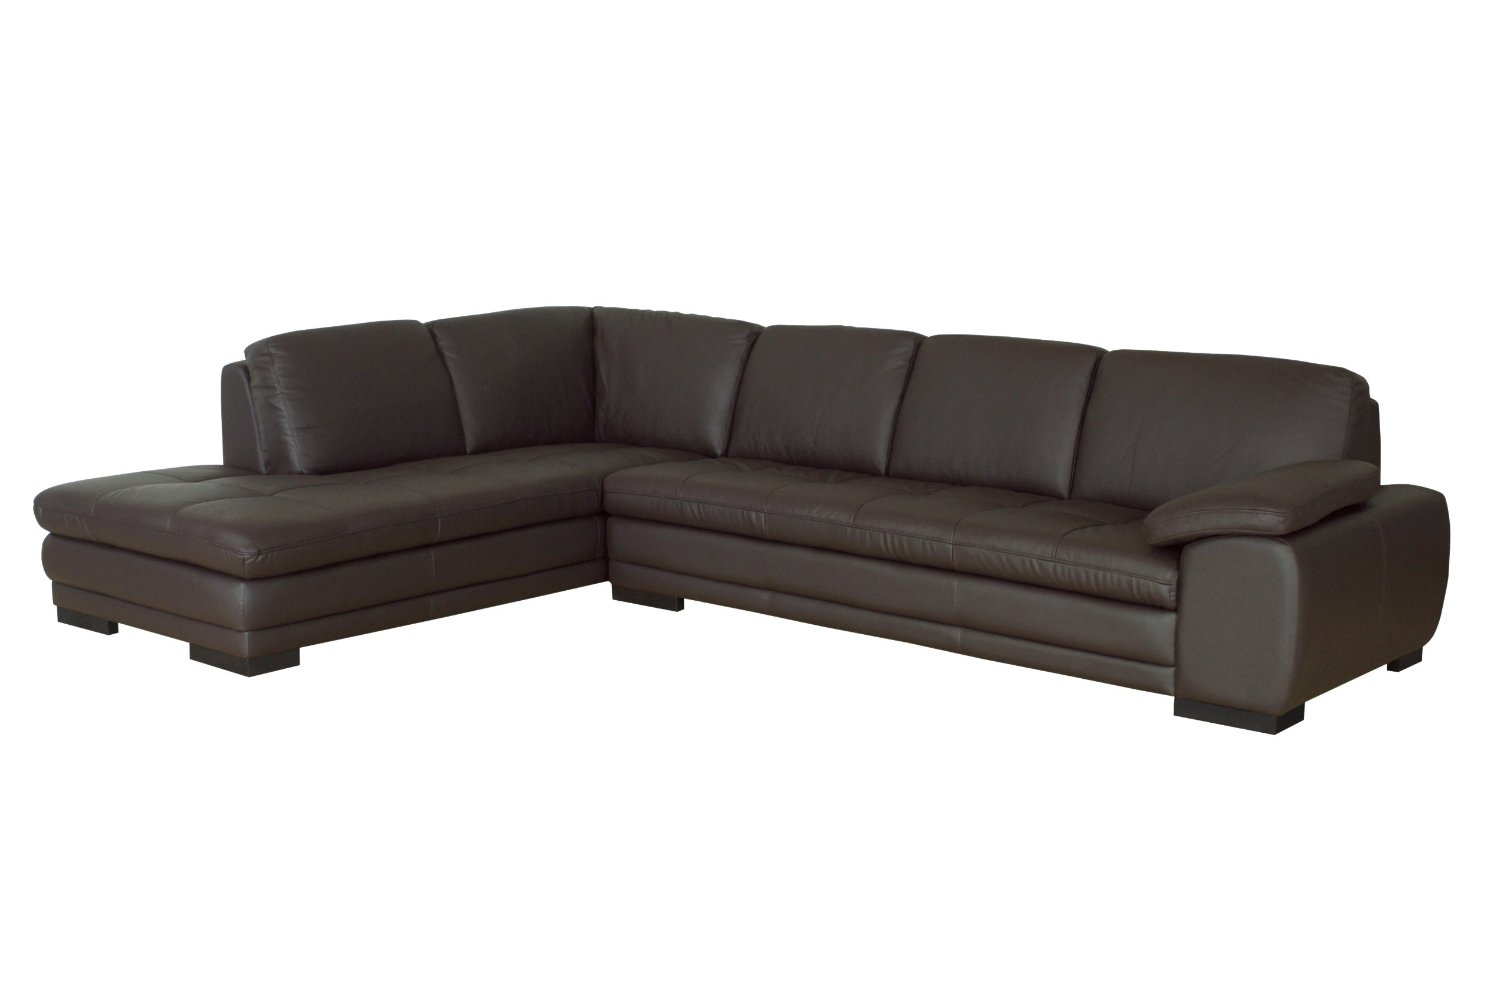 Leather sectional furniture guide leather for Leather furniture